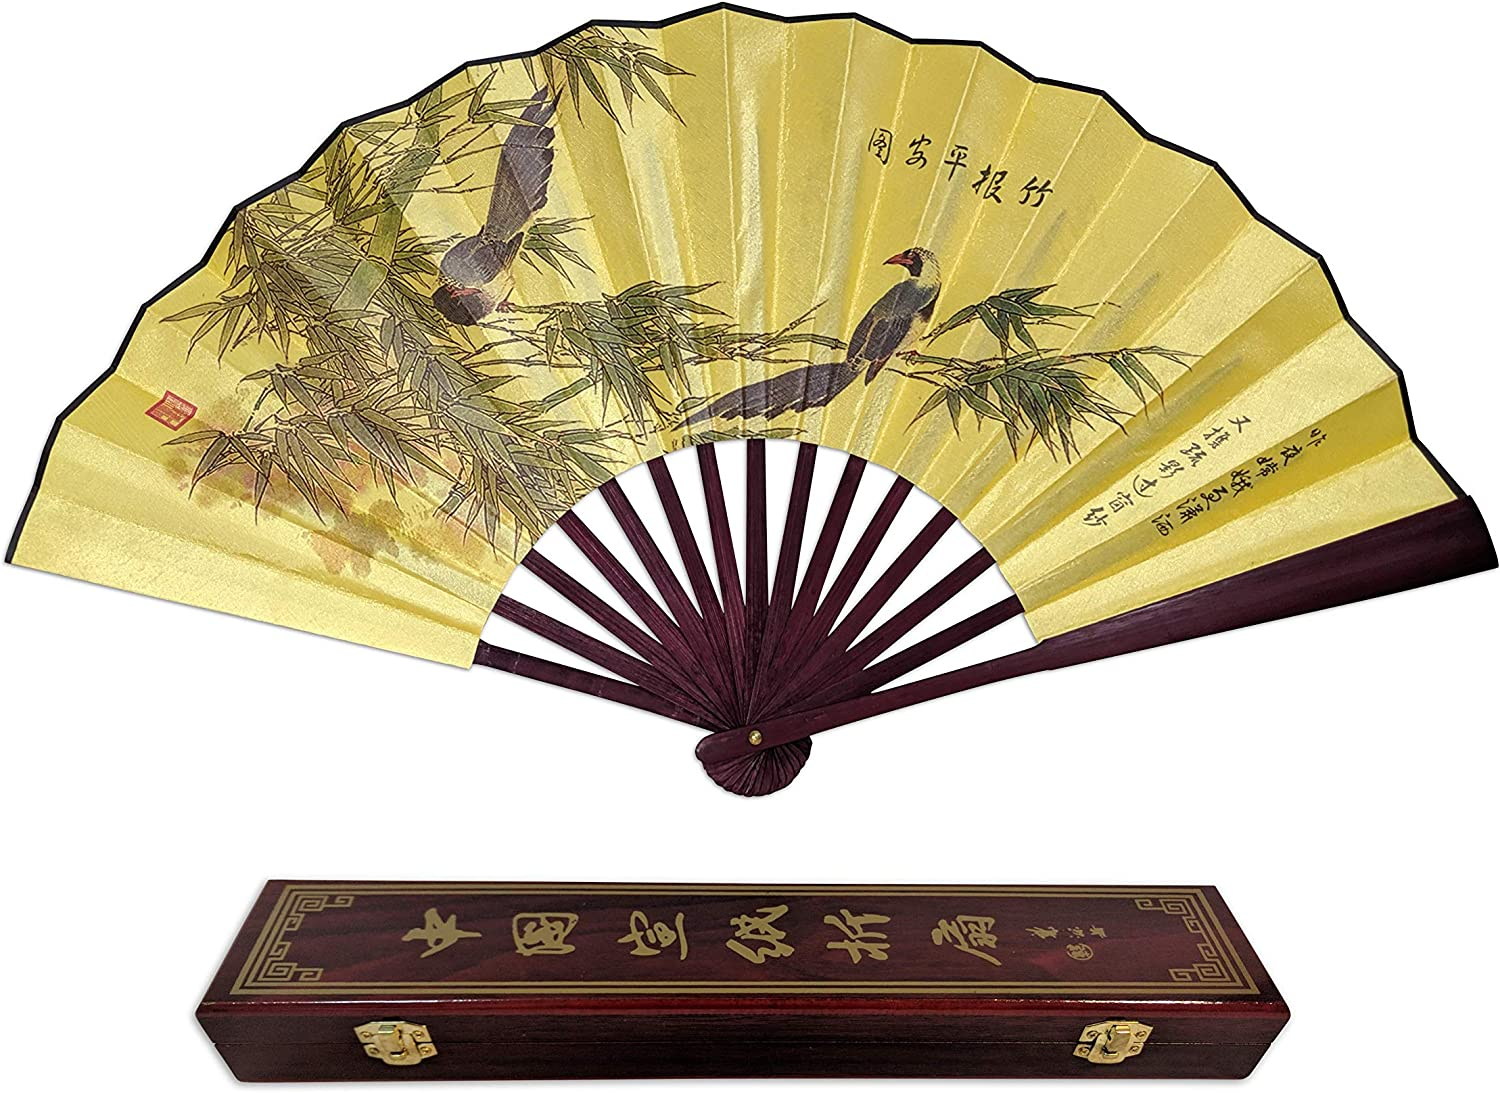 Amazon Com Folding Hand Fan Chinese Gifts Bamboo With Birds Large Quality Handheld Japanese Fans With Gift Box Kitchen Dining